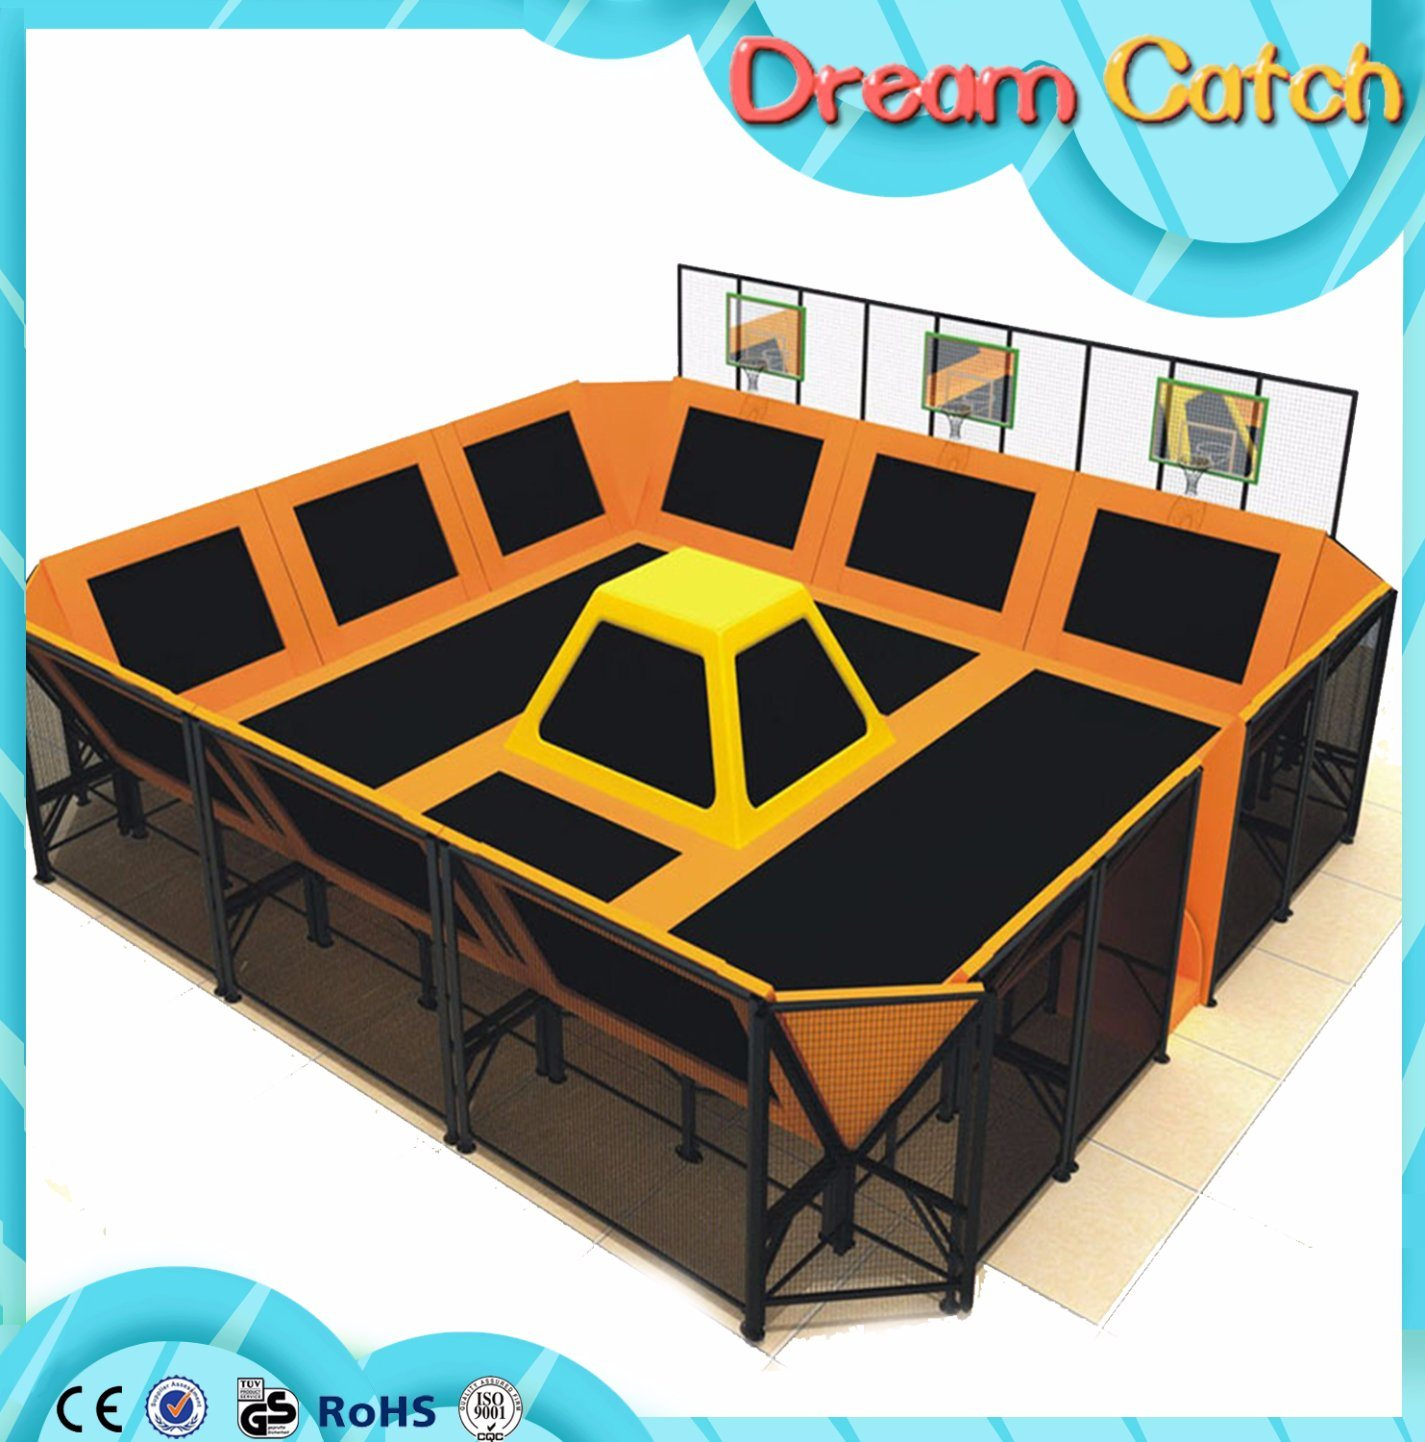 2017 New Product Outdoor Fitness Trampoline Wholesaler